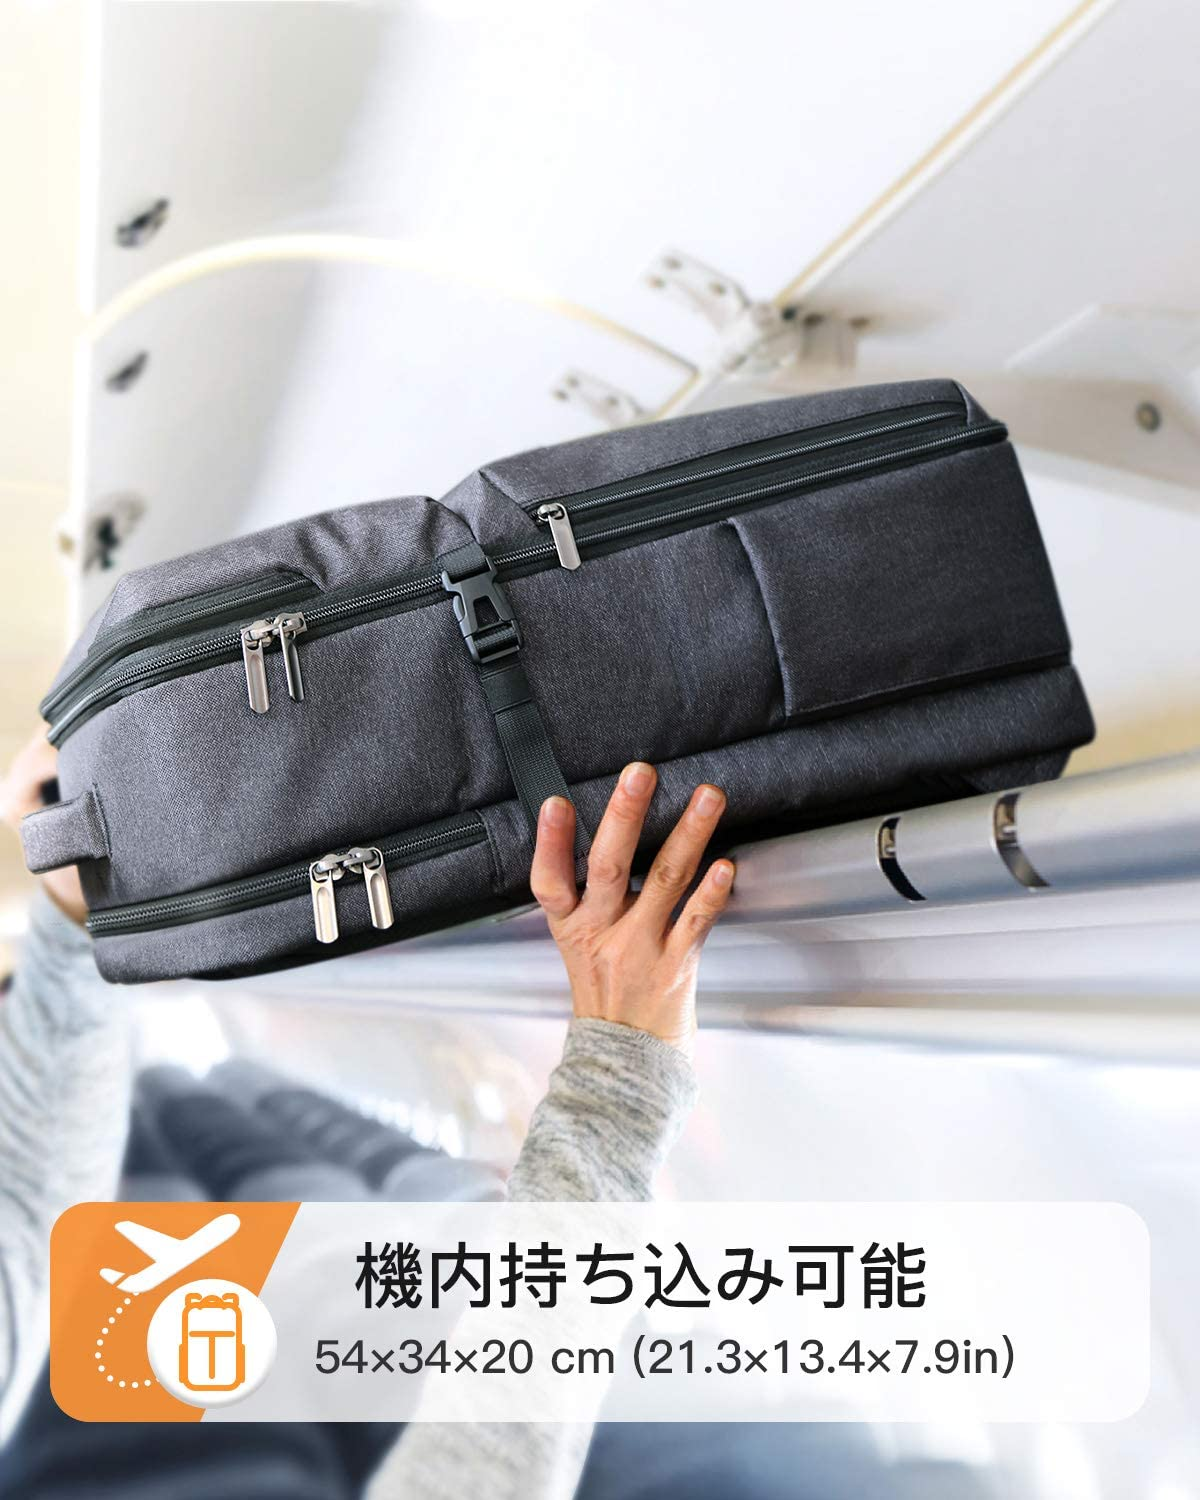 40-42L 17インチラップトップ 旅行 レジャーバックパック BP03004,black - Inateckバックパックジャパン